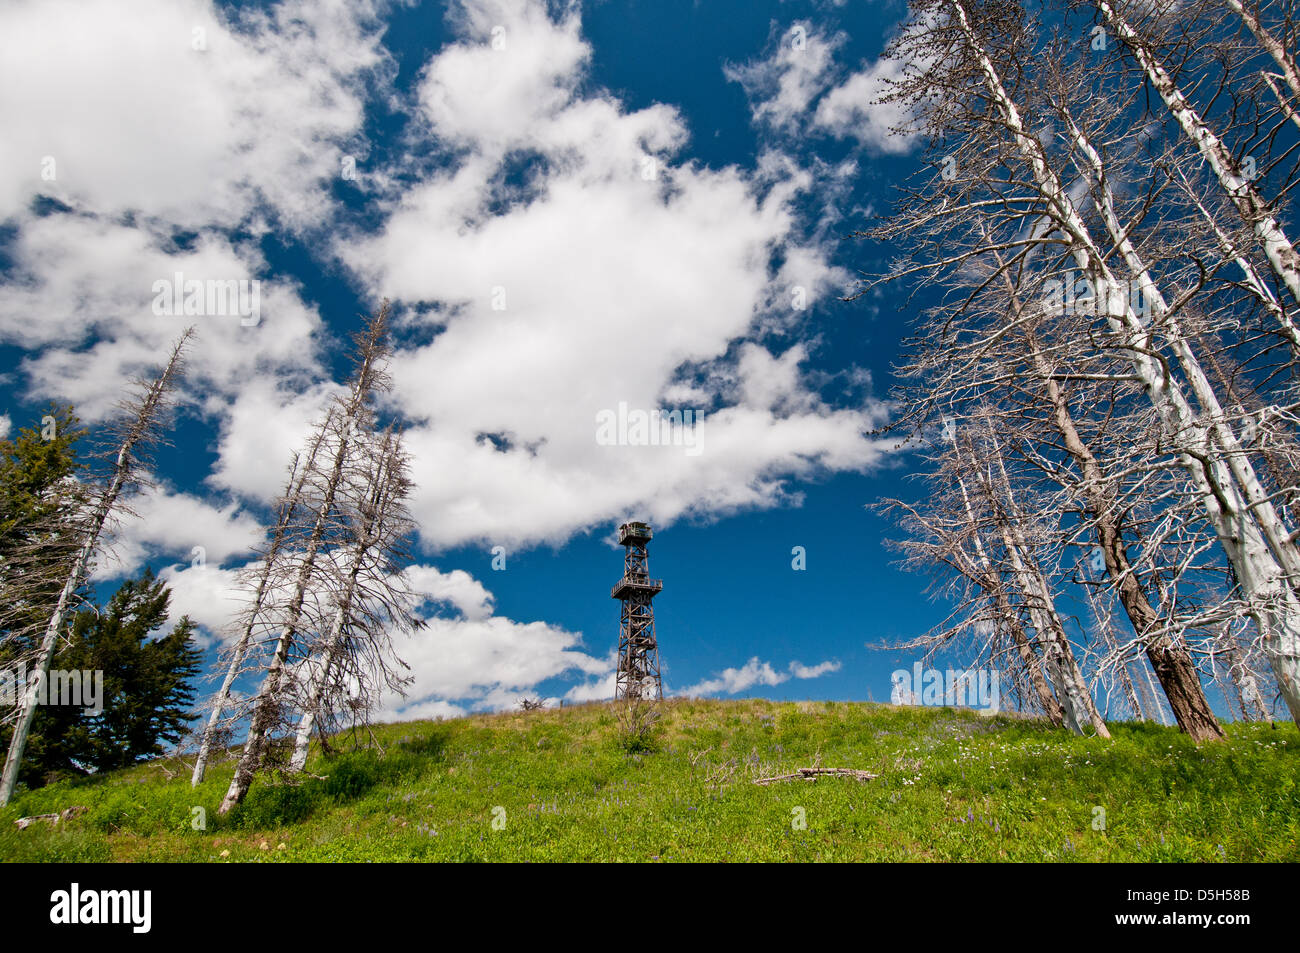 Hat Point fire lookout in Hells Canyon National Recreation Area, Oregon - Stock Image